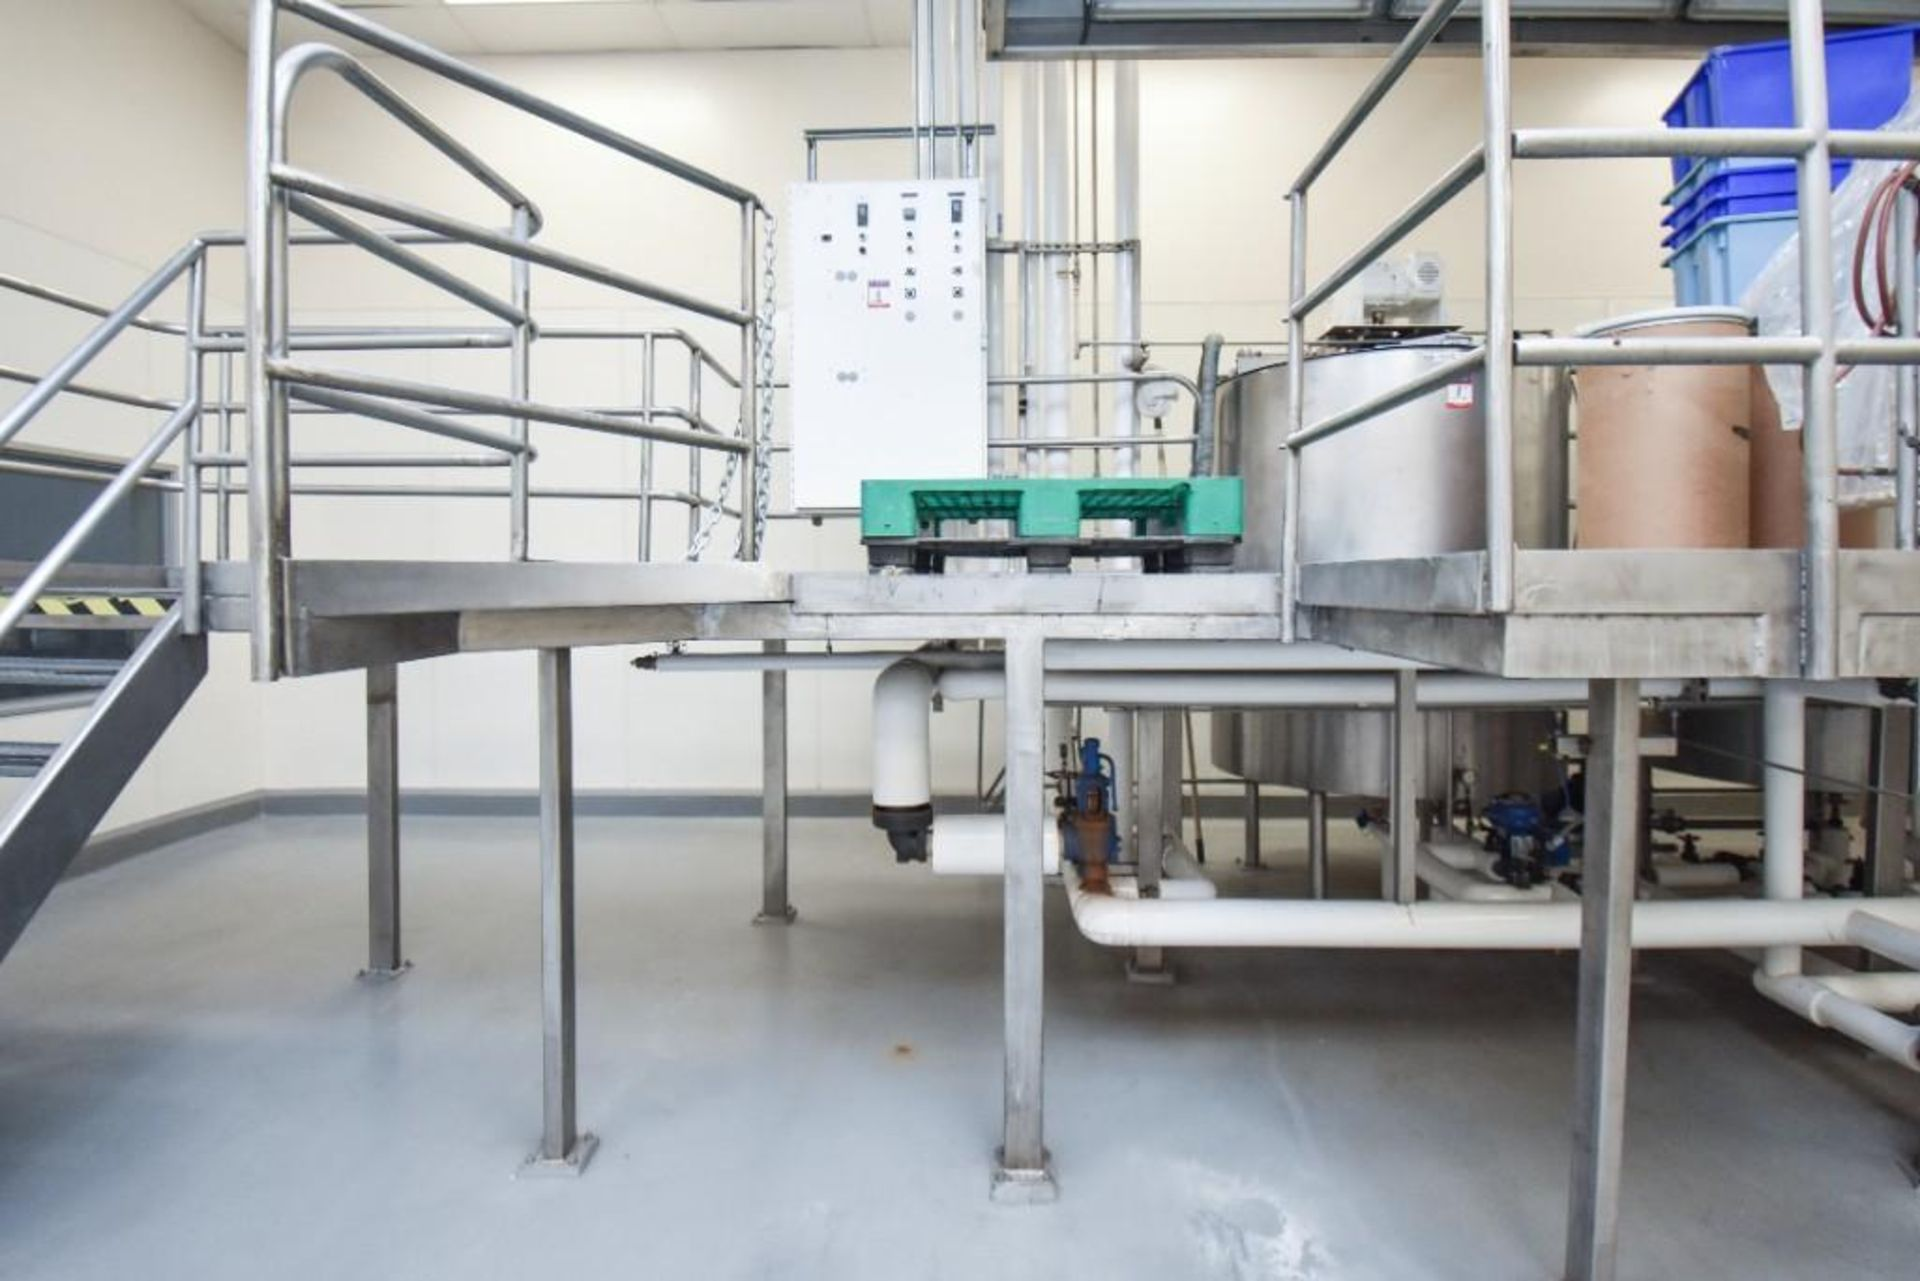 3 Jacketed Liquid Mixing Tank System - Image 4 of 21